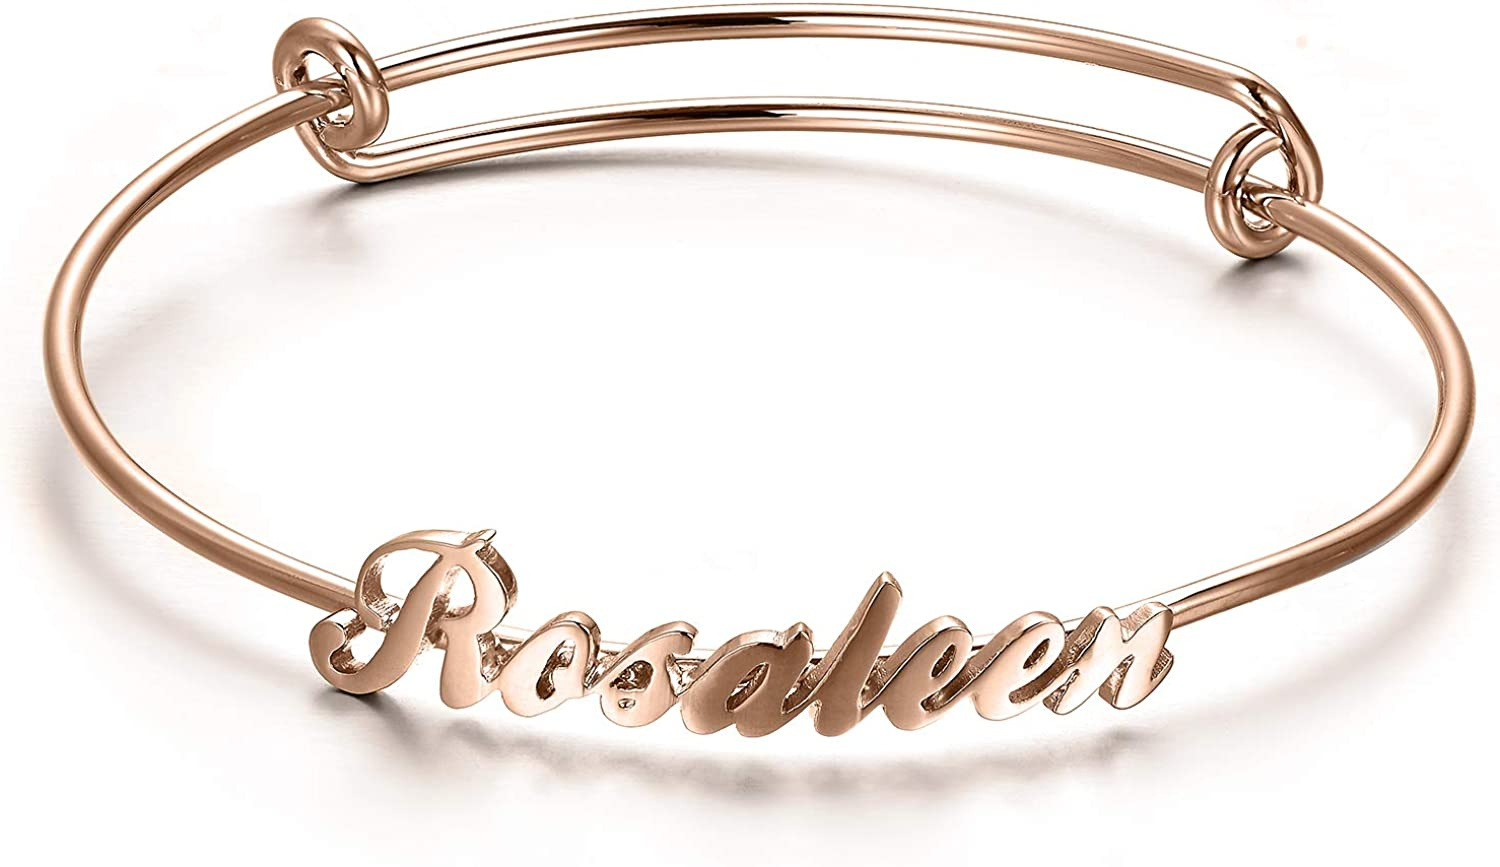 RMREWY Sterling Silver Name Handmade Indianapolis Mall Engra Bracelet Finally popular brand Personalized